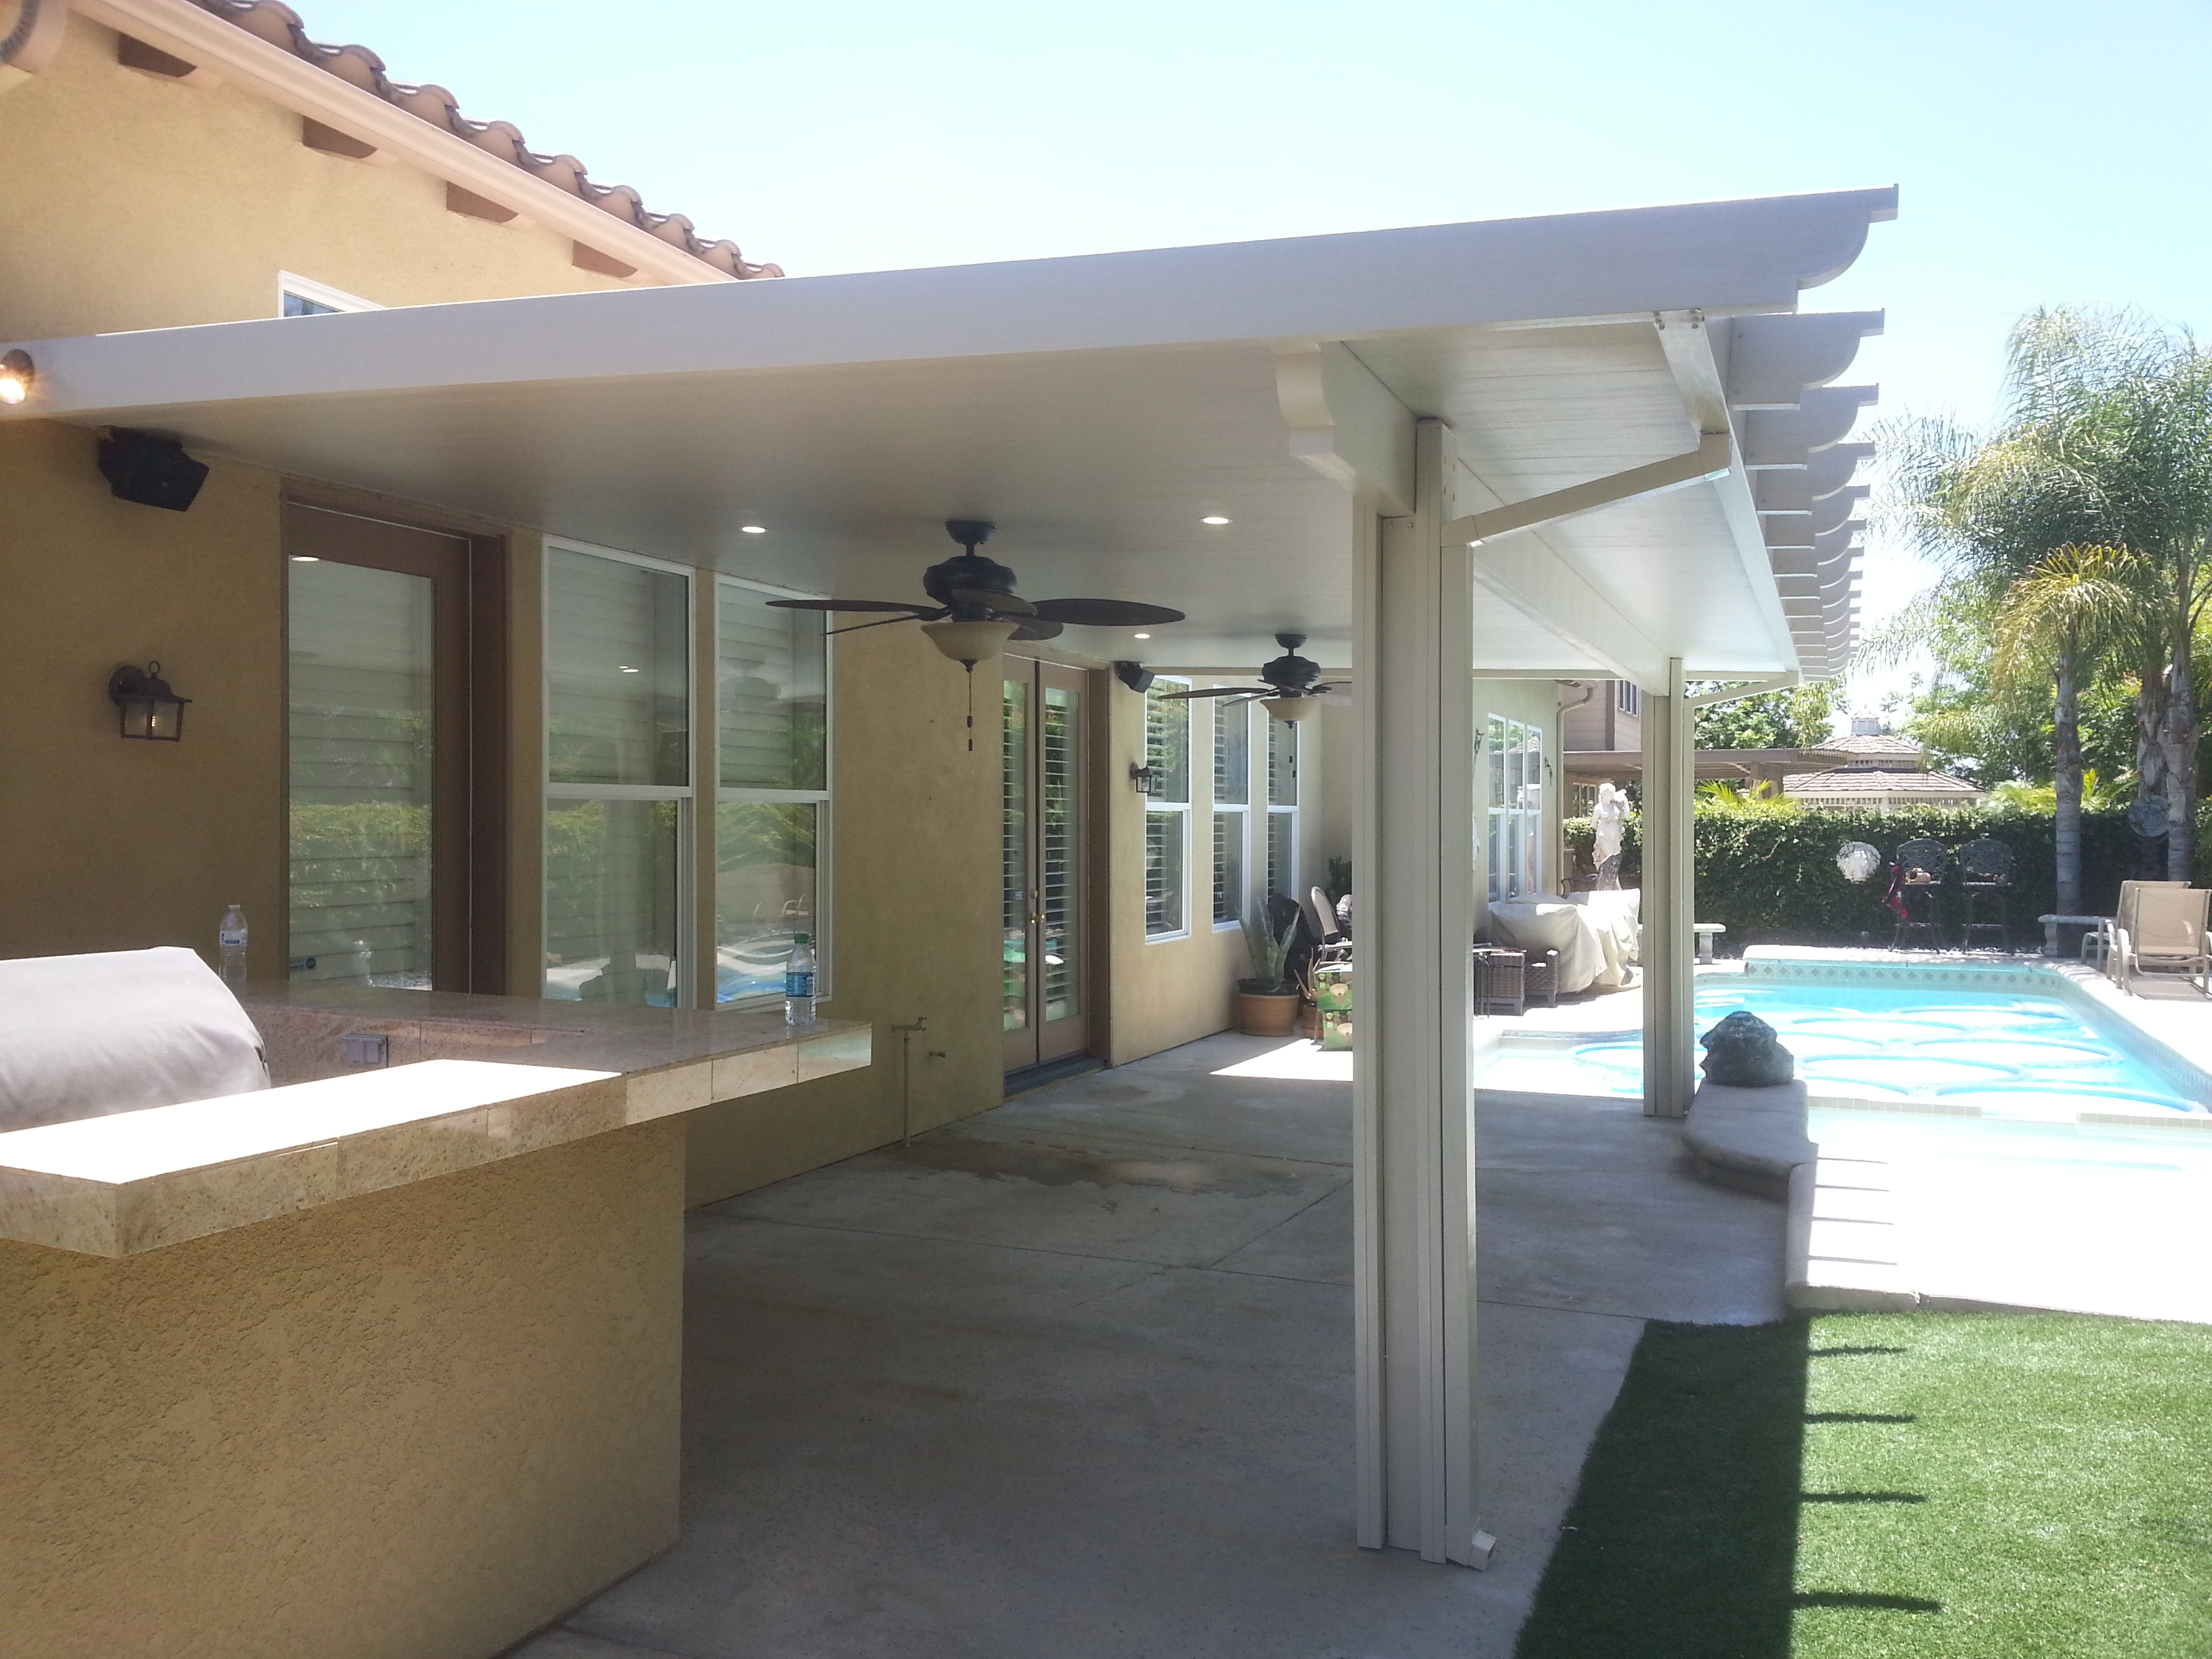 Alumawood Patio And Ceiling Fan Install